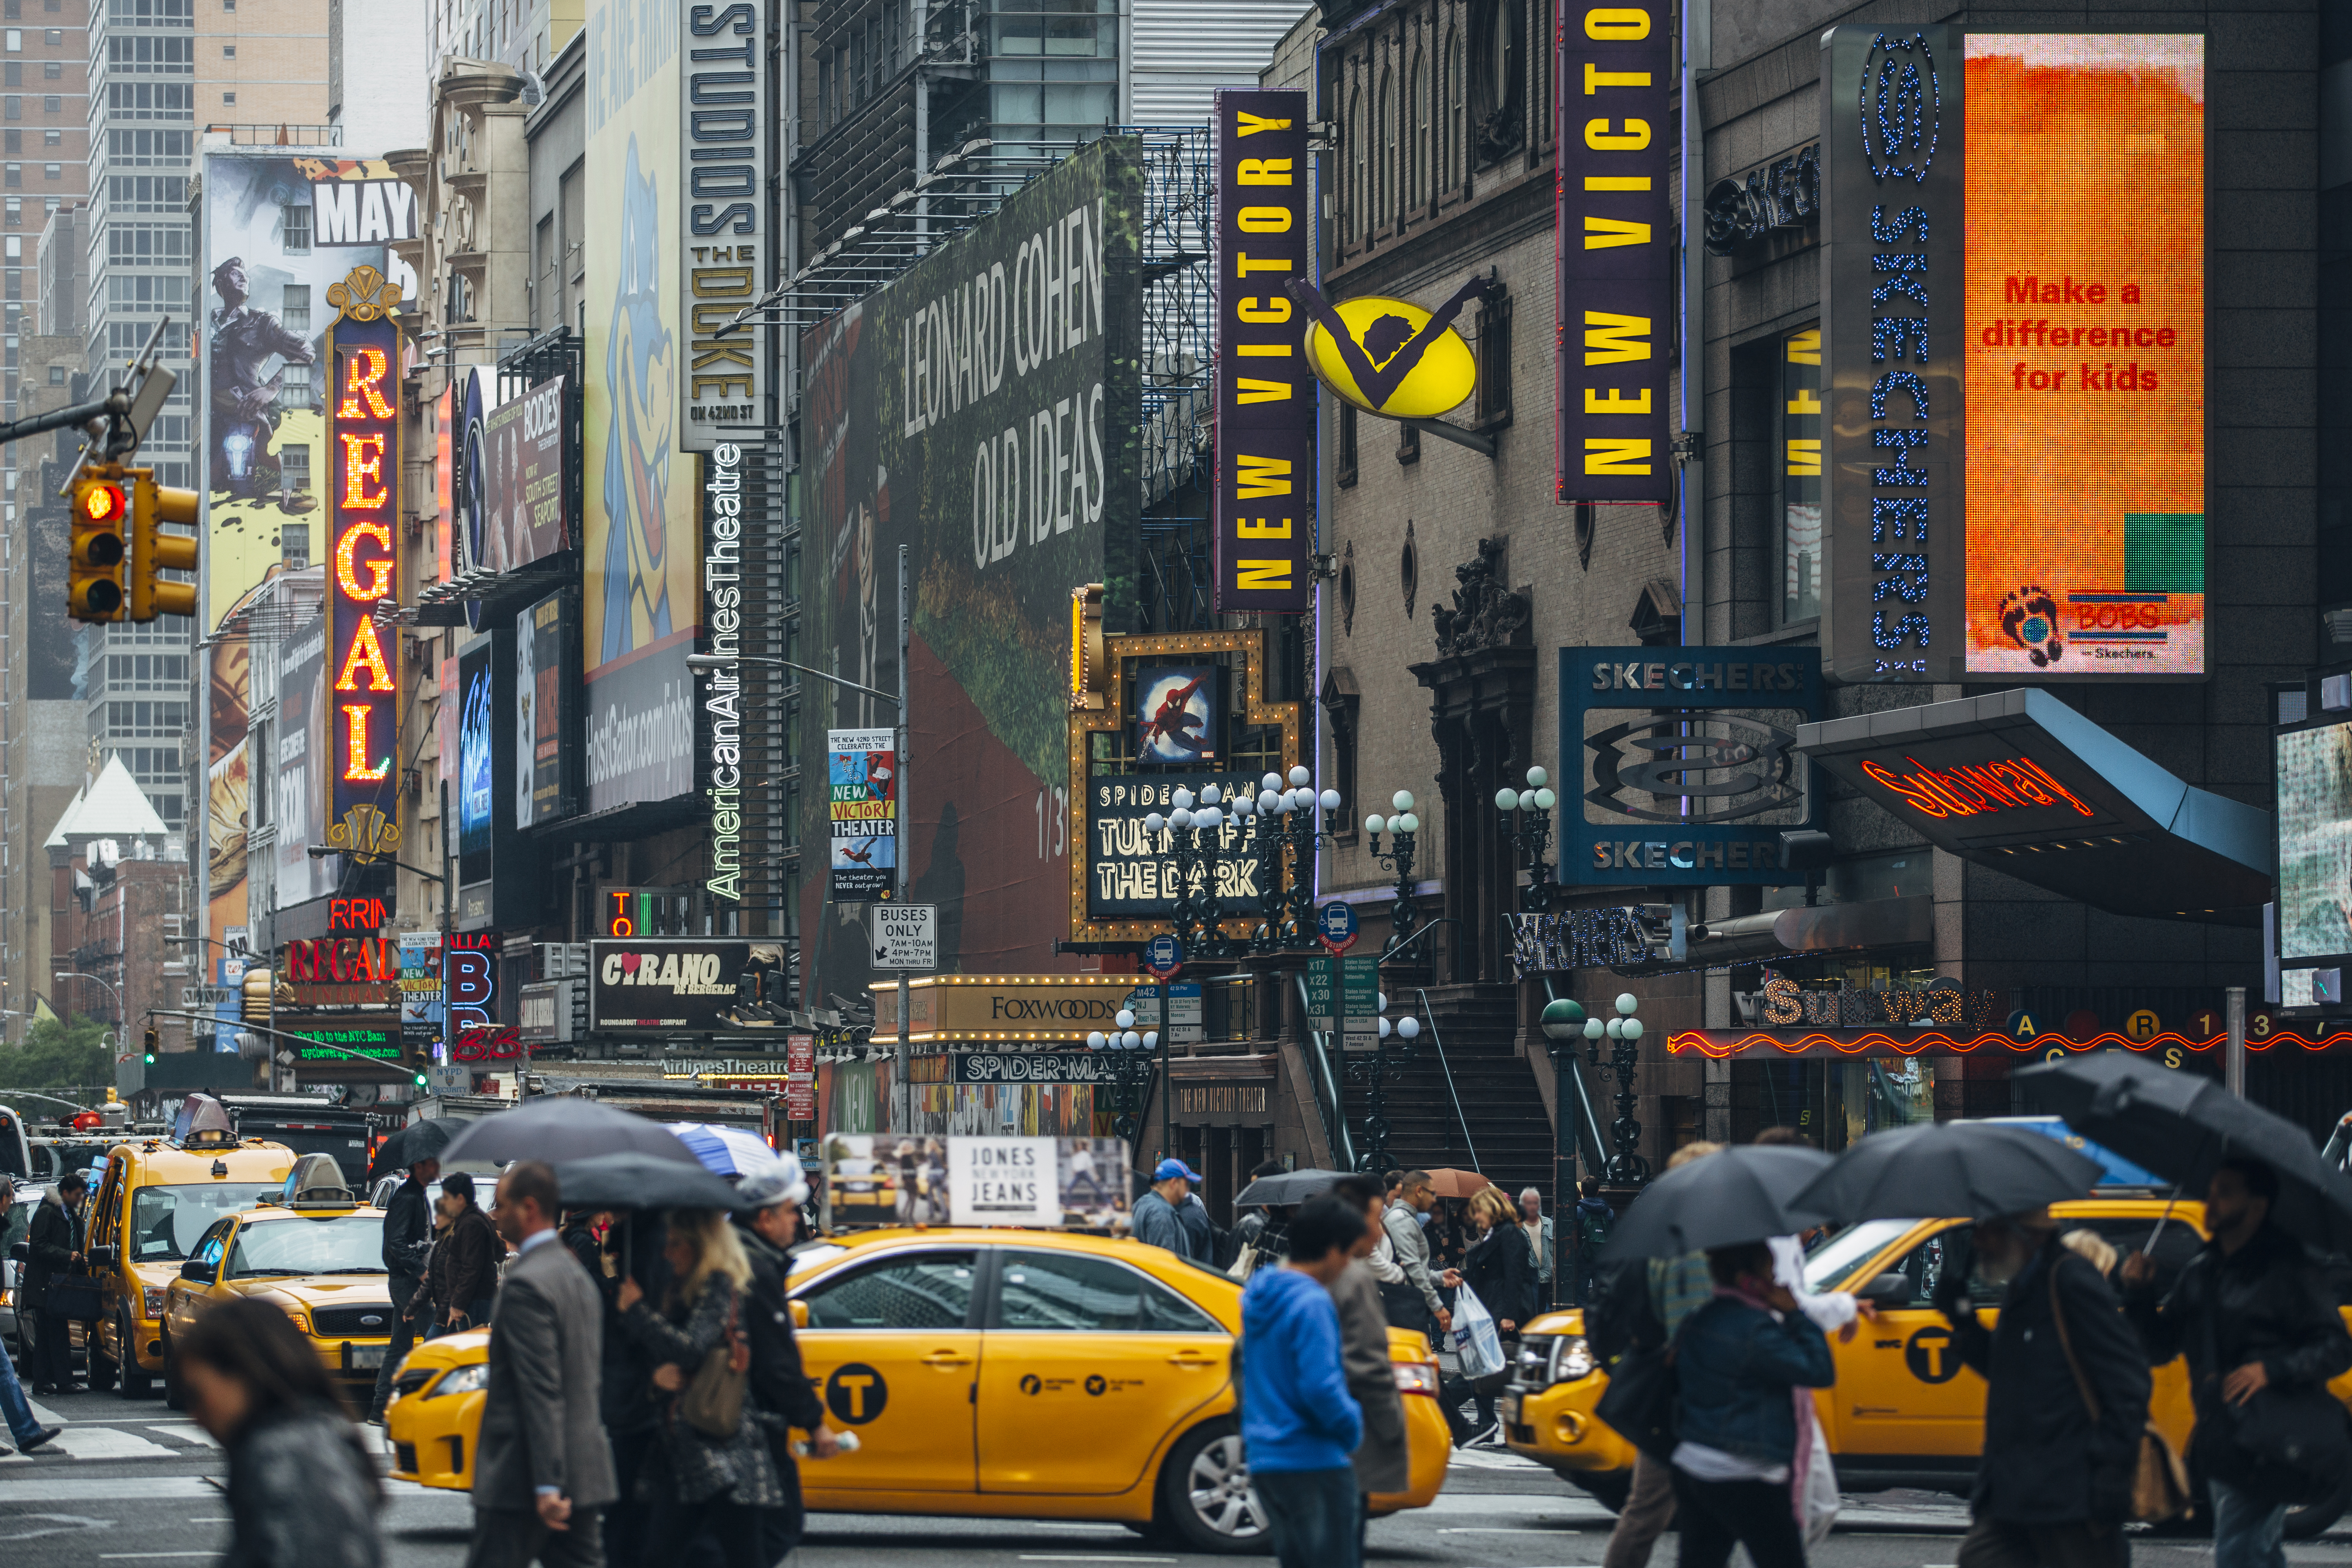 Broadway theater billboards and city traffic, New York City, NY, USA